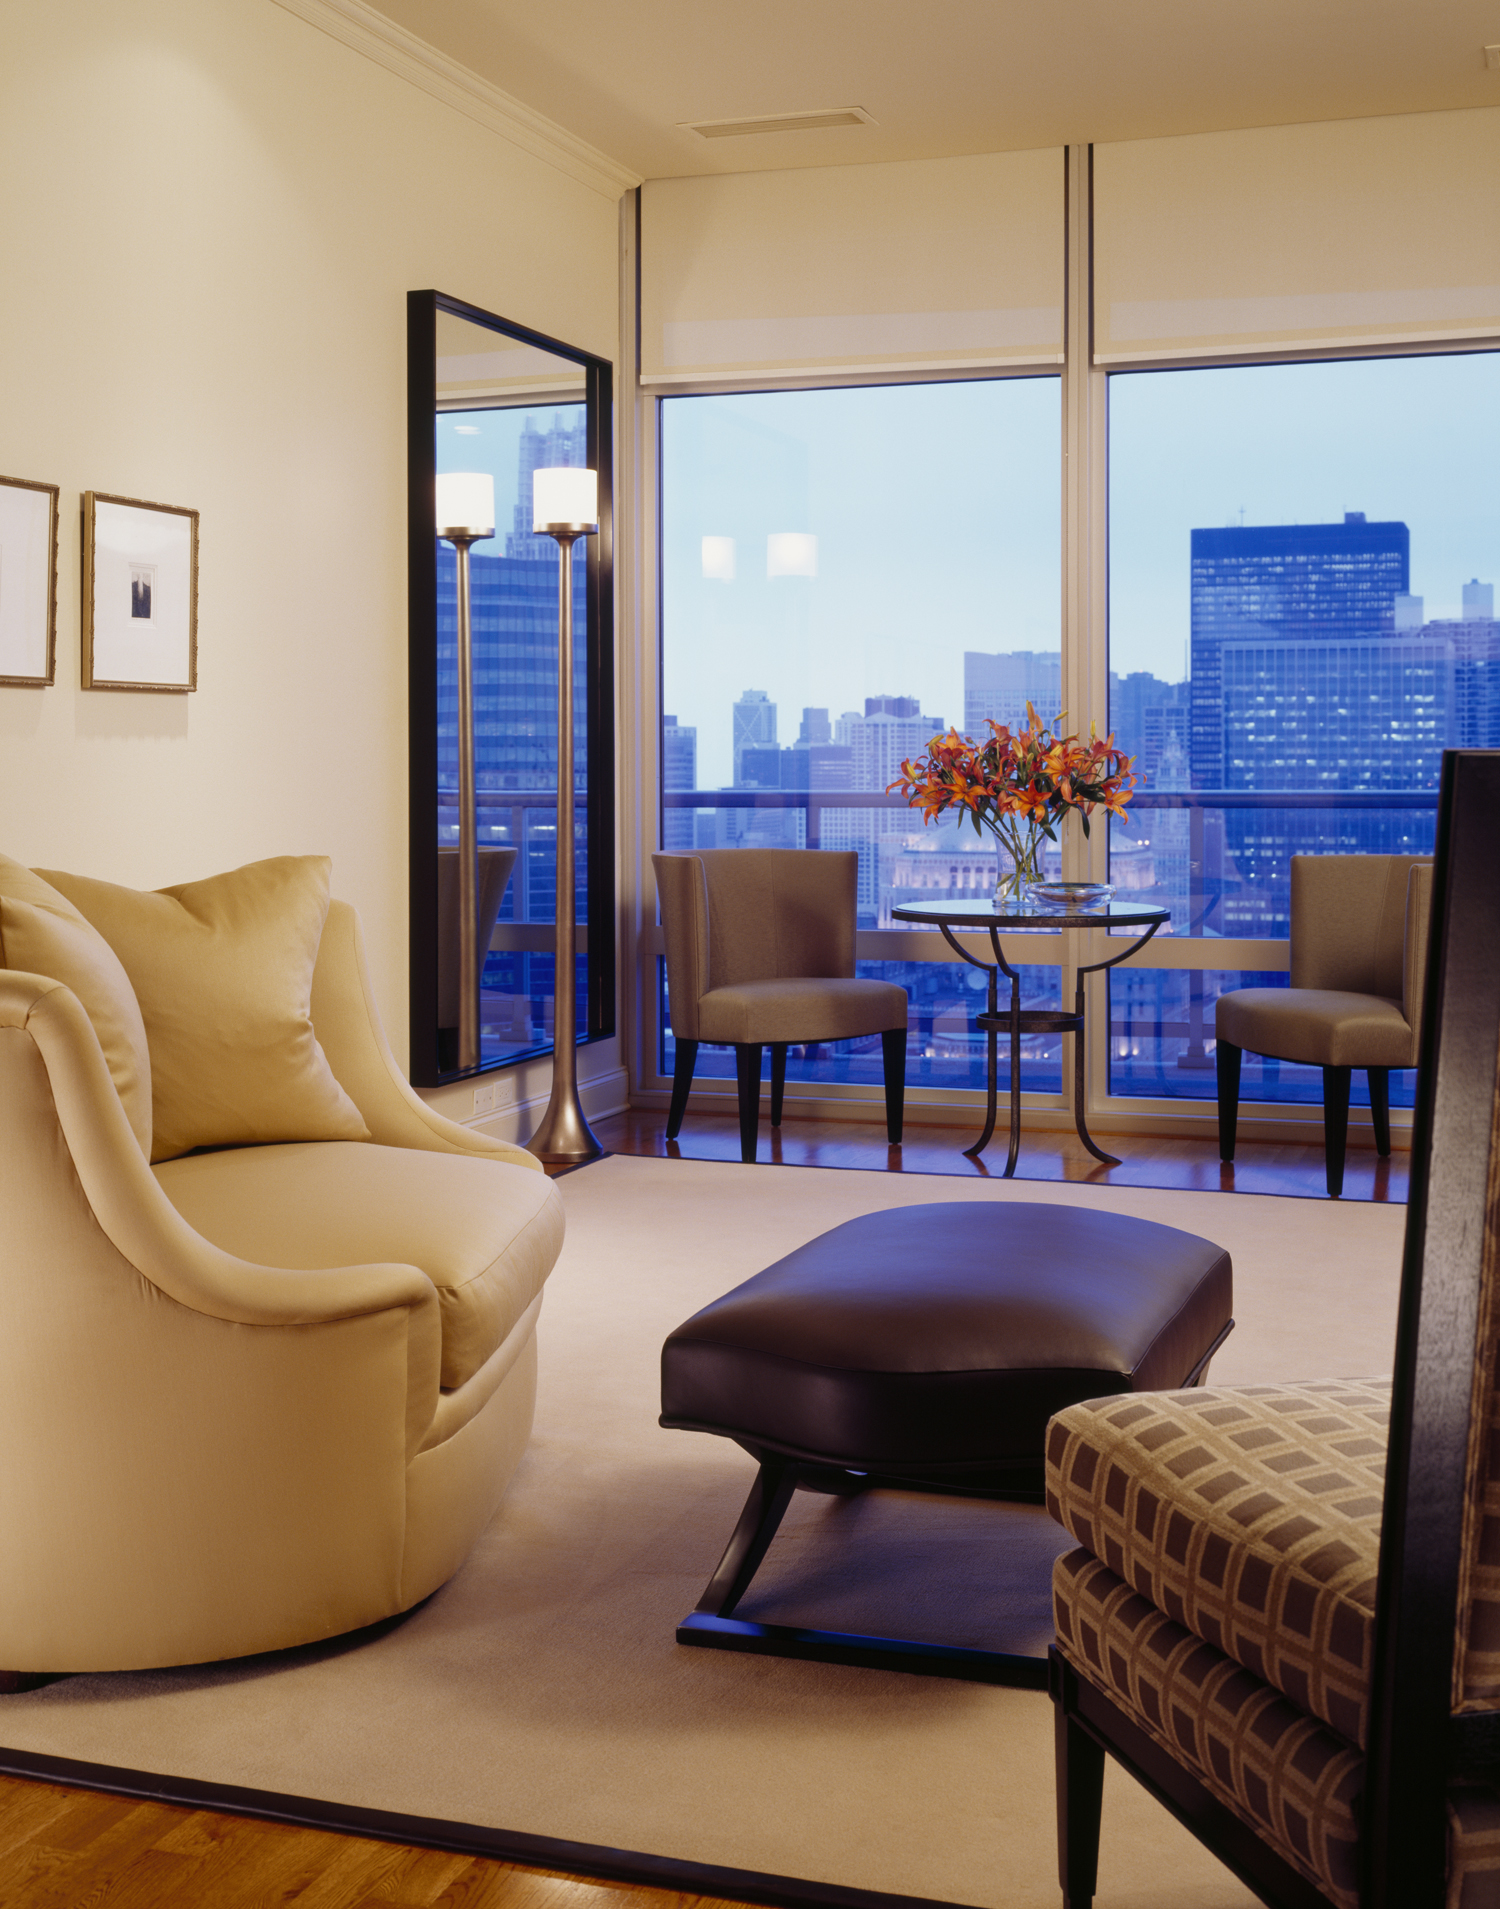 Sleek River North - living room by Mitchell Channon Design